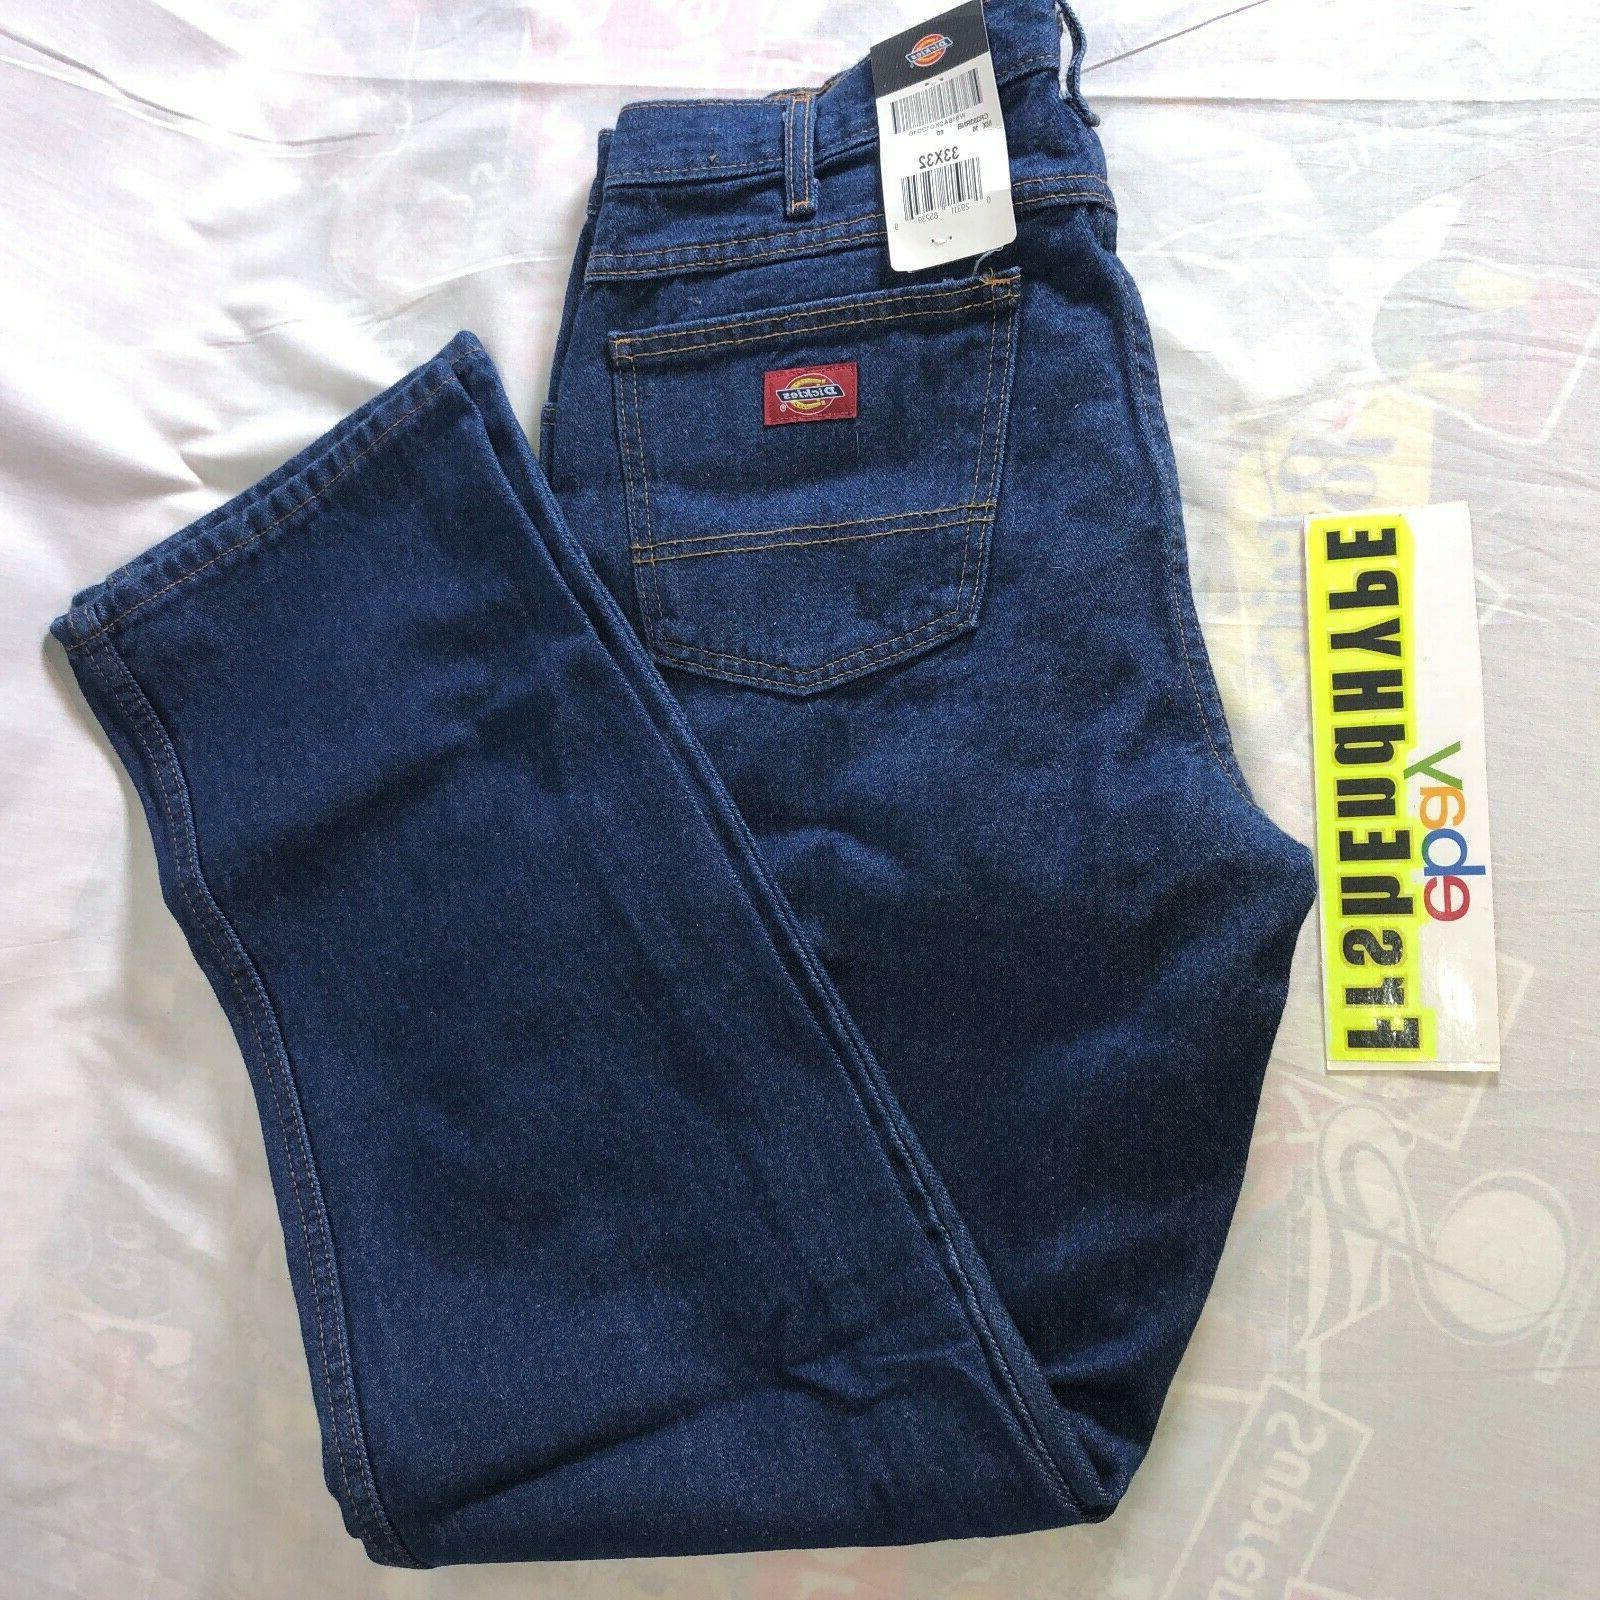 Dickies Denim Men's Size 33 x 32 Relaxed Fit Rinsed